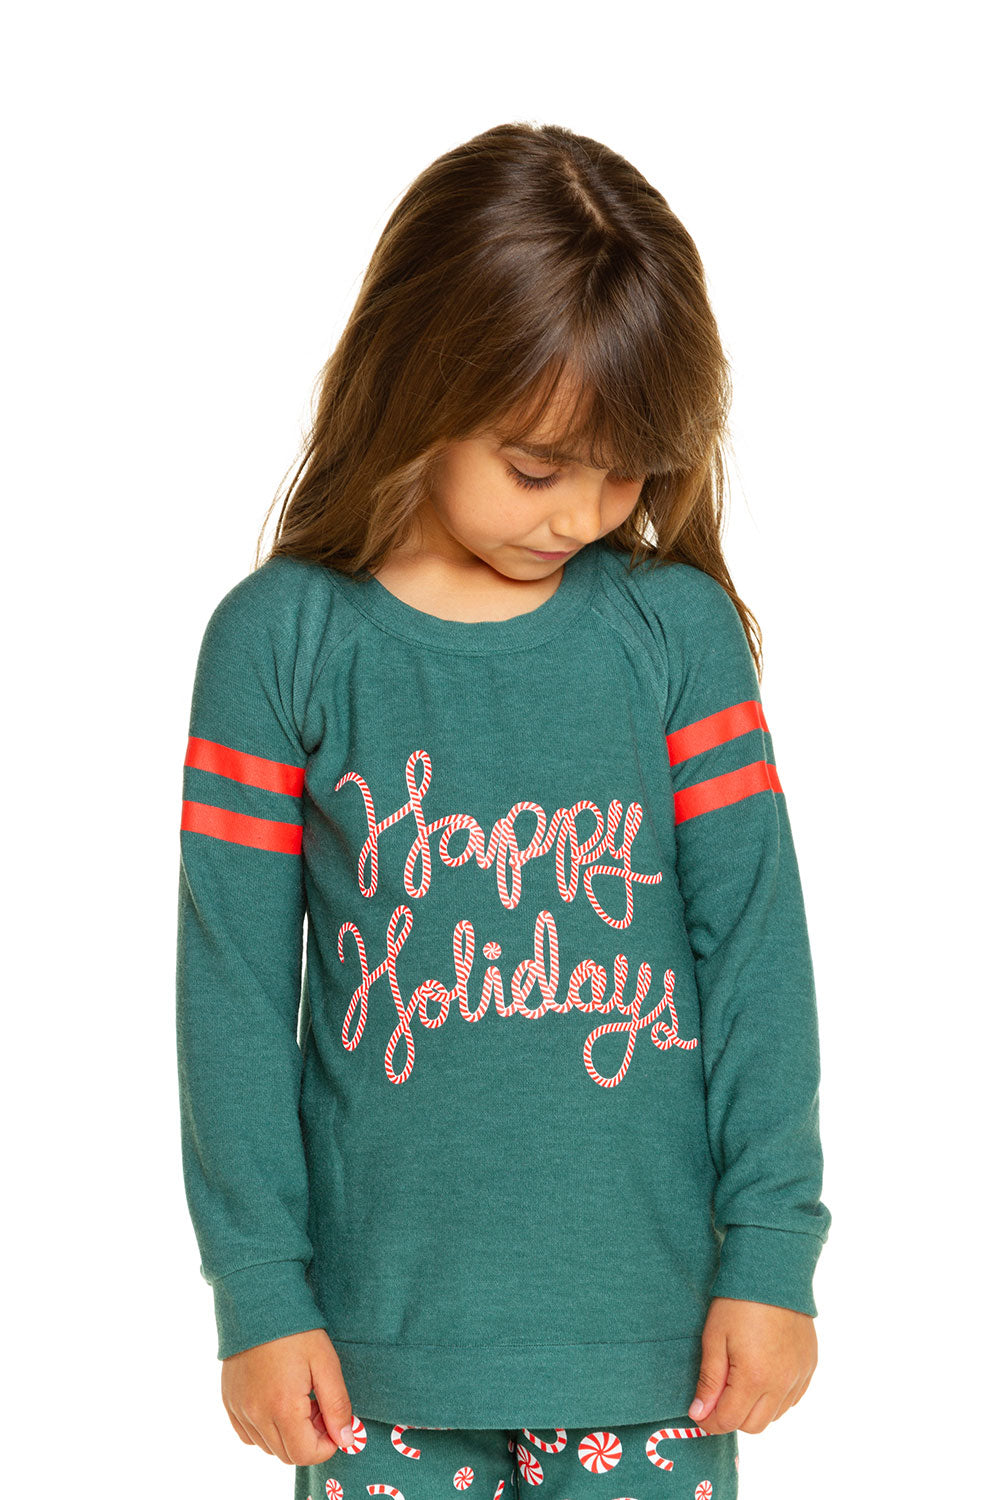 Happy Holidays GIRLS chaserbrand4.myshopify.com